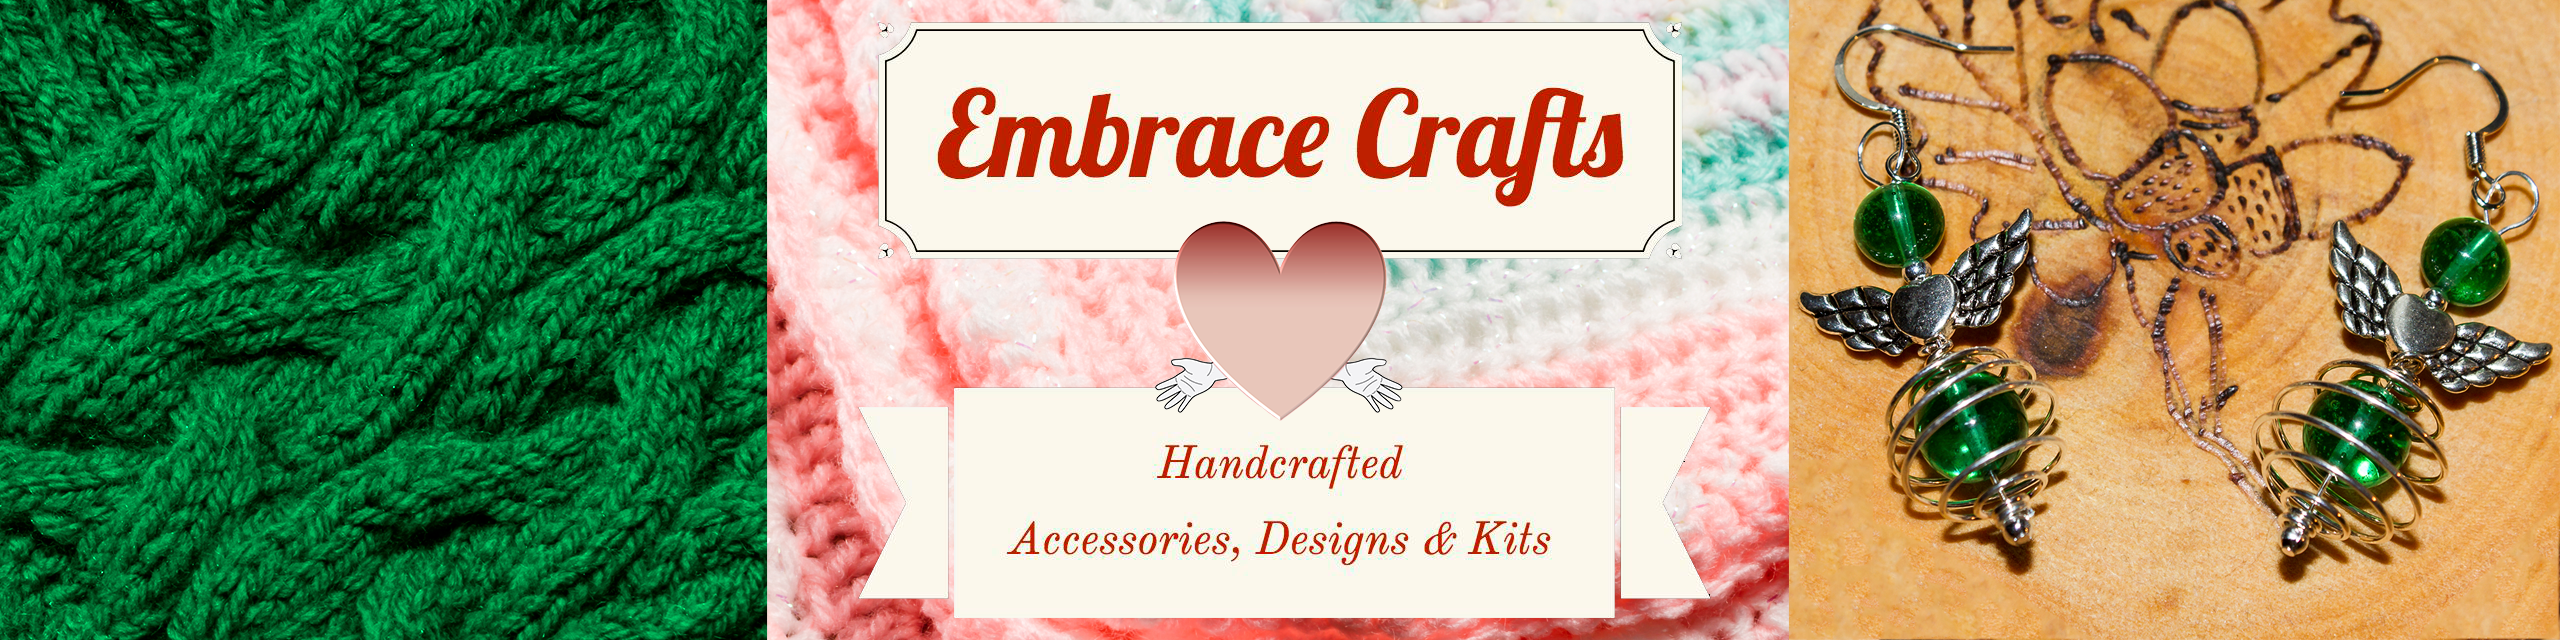 Embrace Crafts